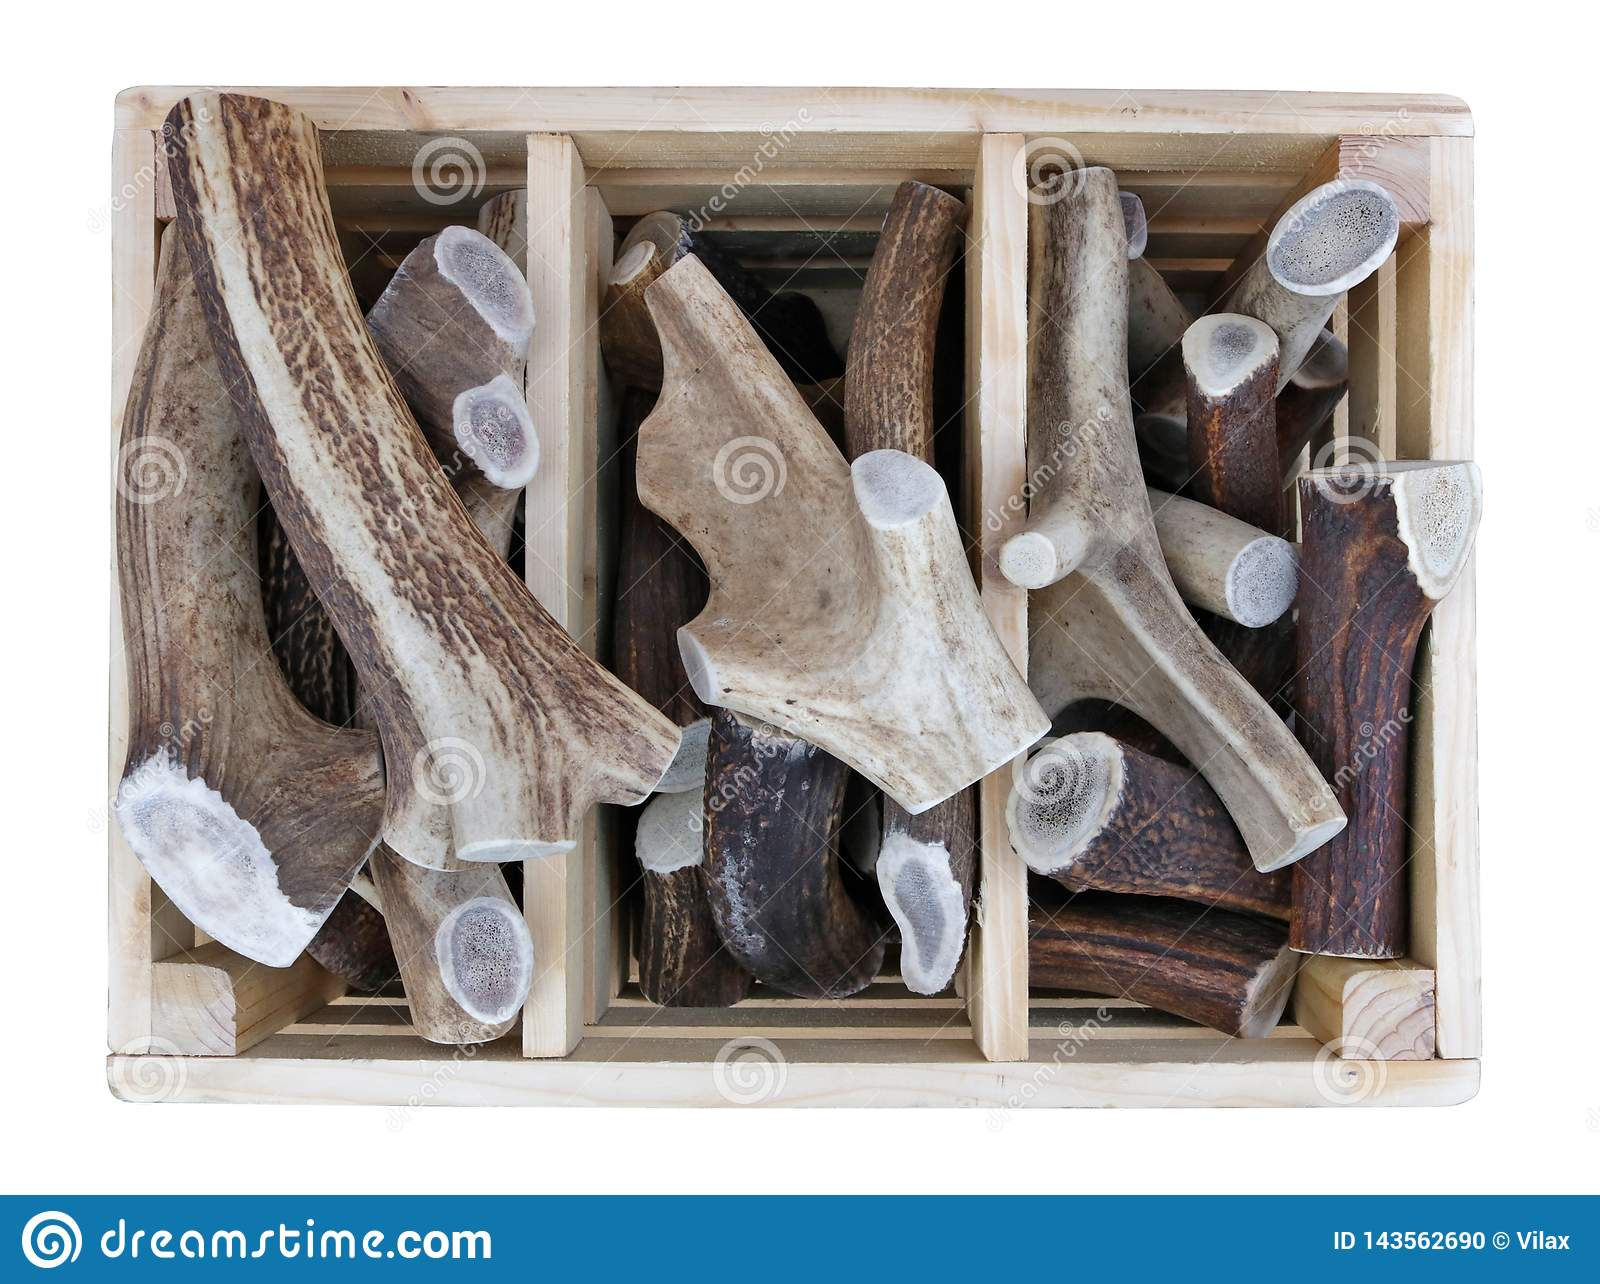 Sawn pieces of antlers of forest deer and elks in wooden box sold on the street